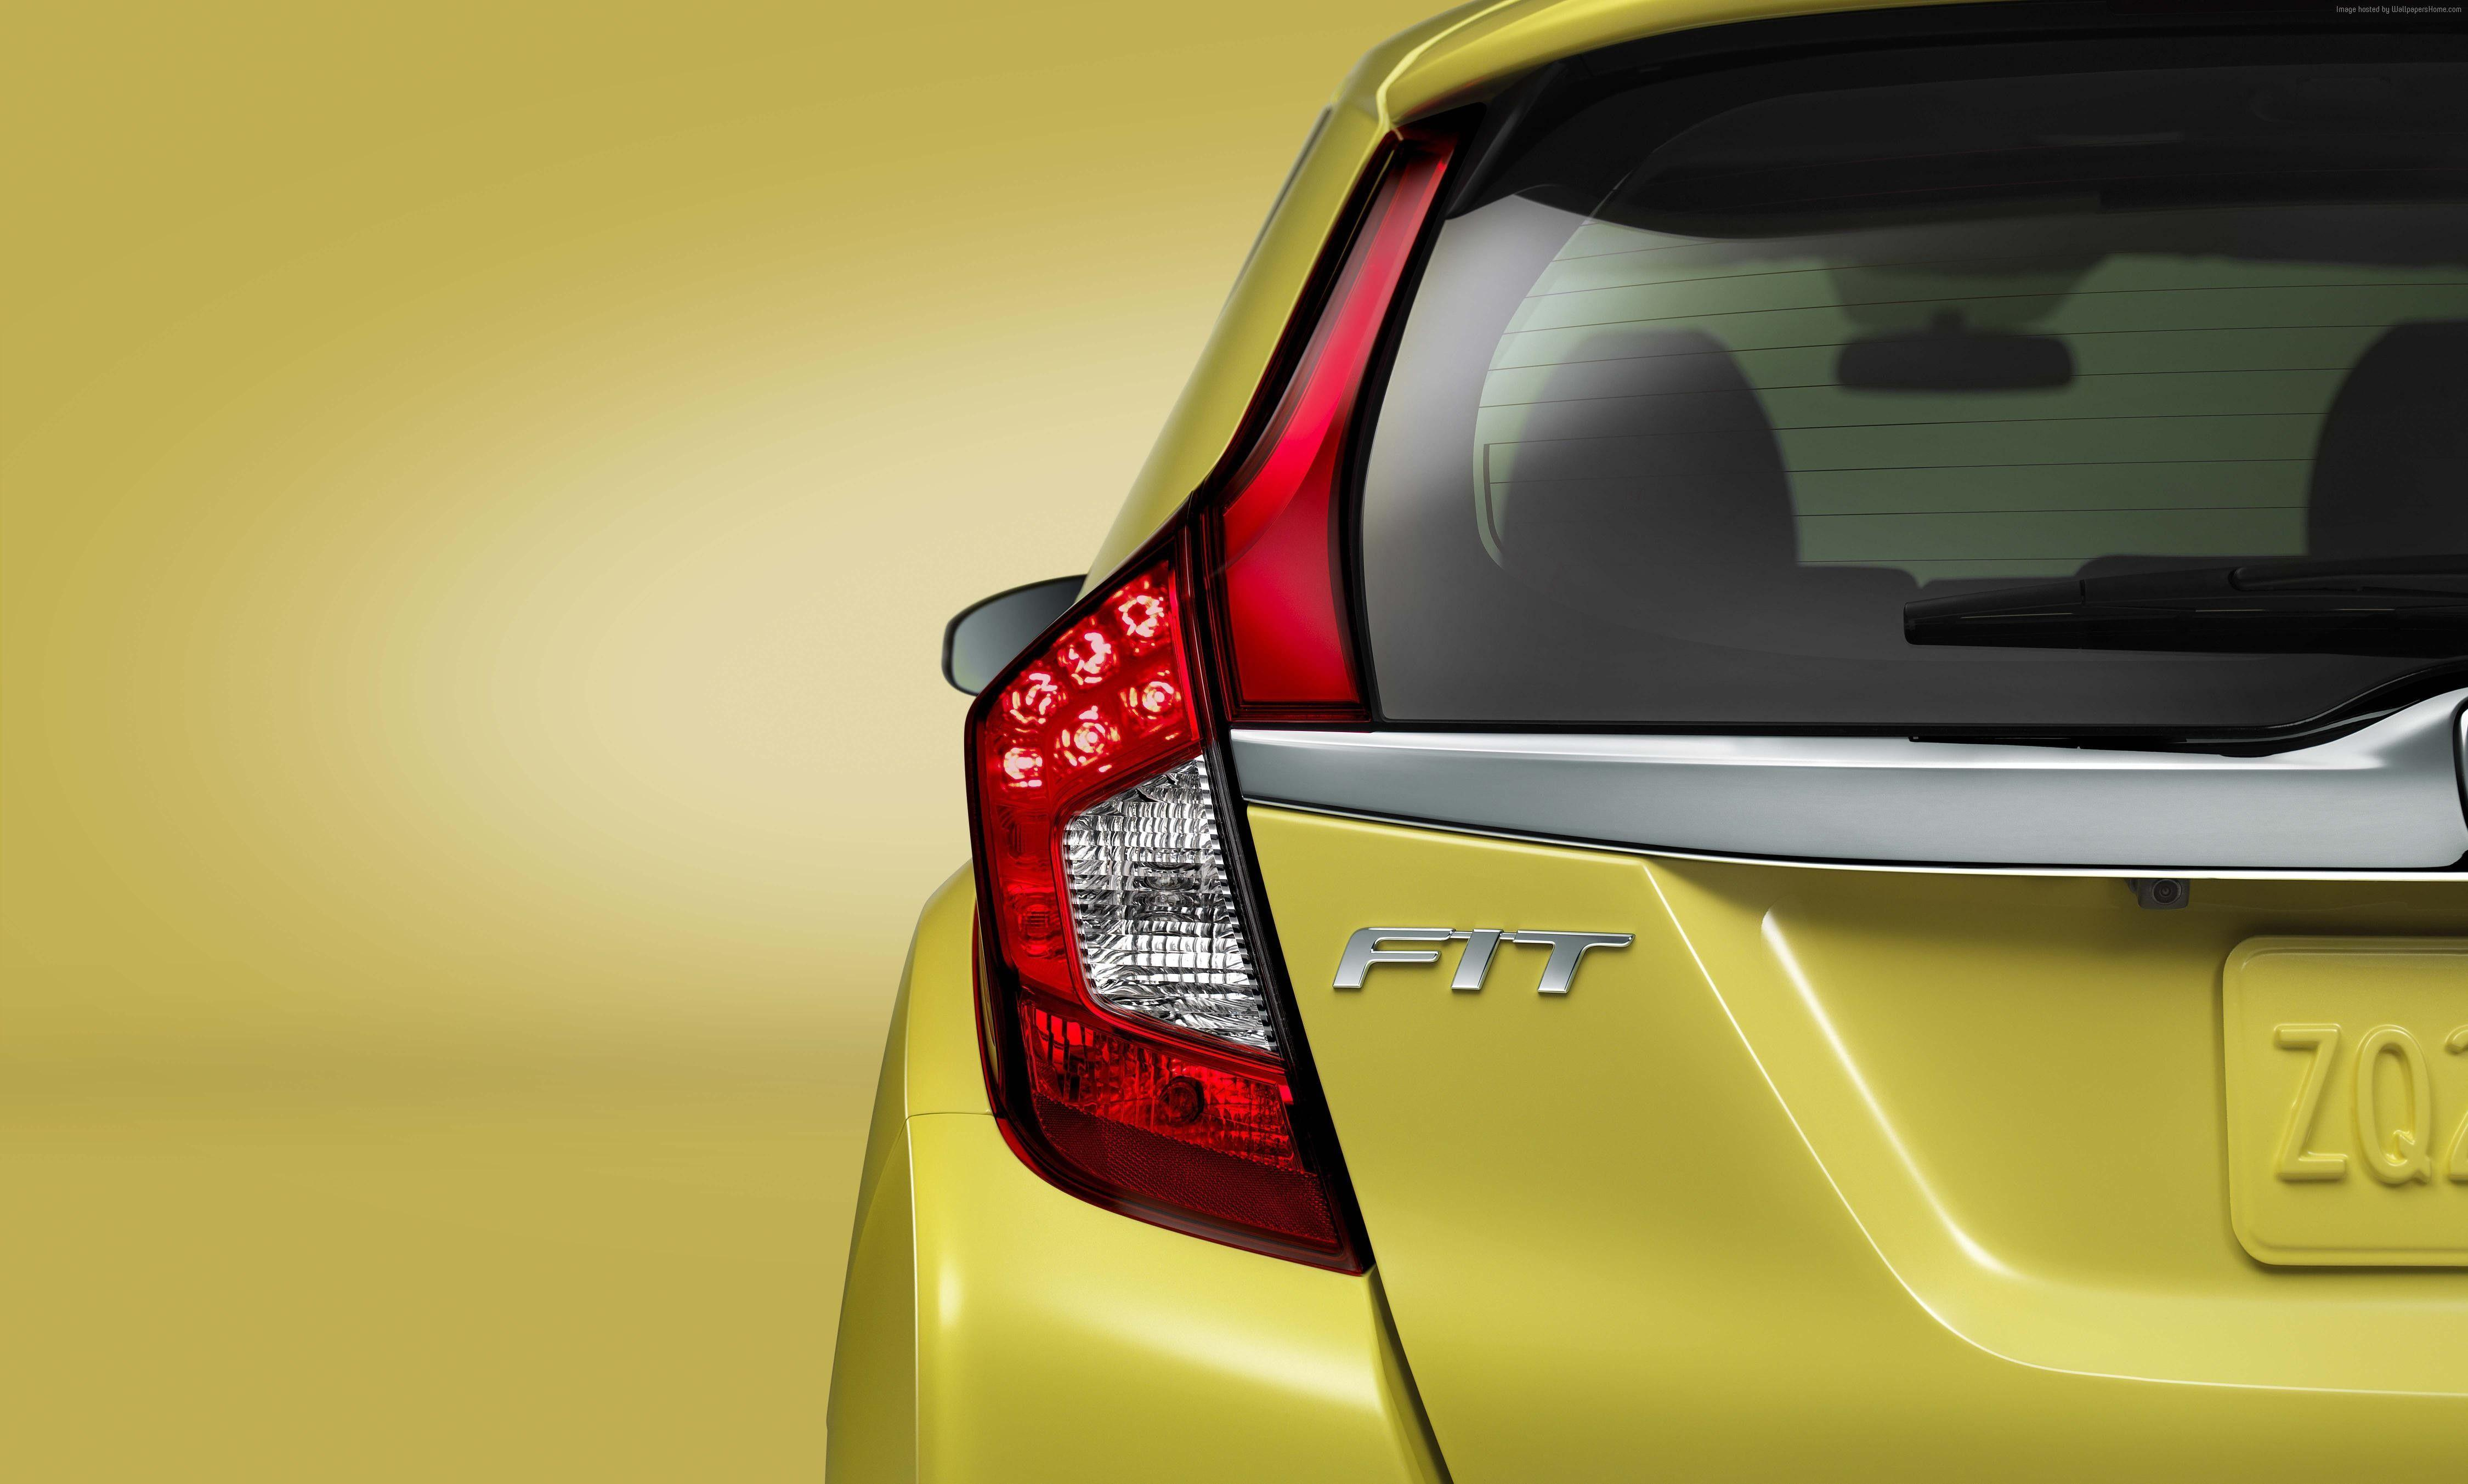 Wallpapers Honda Fit Hybrid, Best Cars 2015, Honda Jazz, city cars